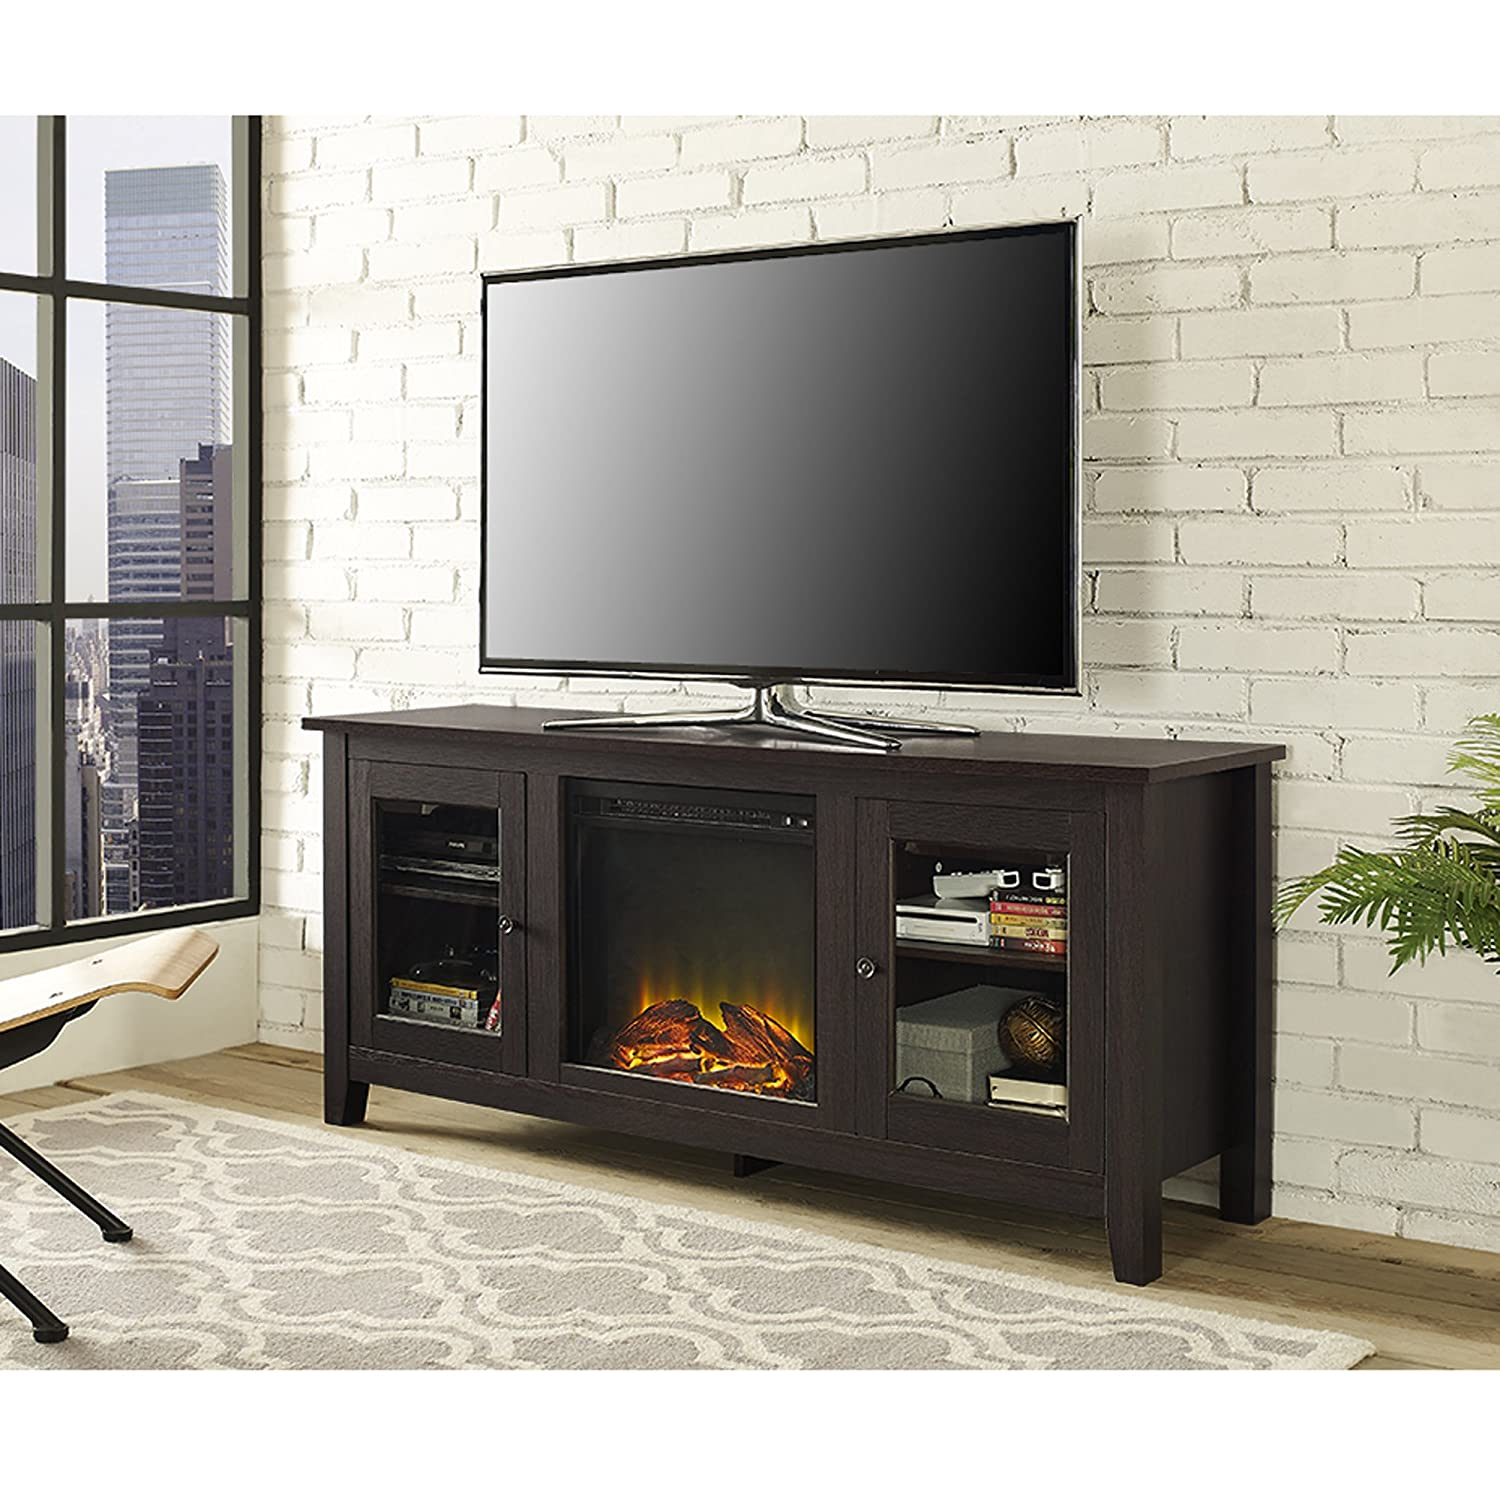 amazoncom we furniture  wood fireplace tv stand console espressokitchen  dining. amazoncom we furniture  wood fireplace tv stand console